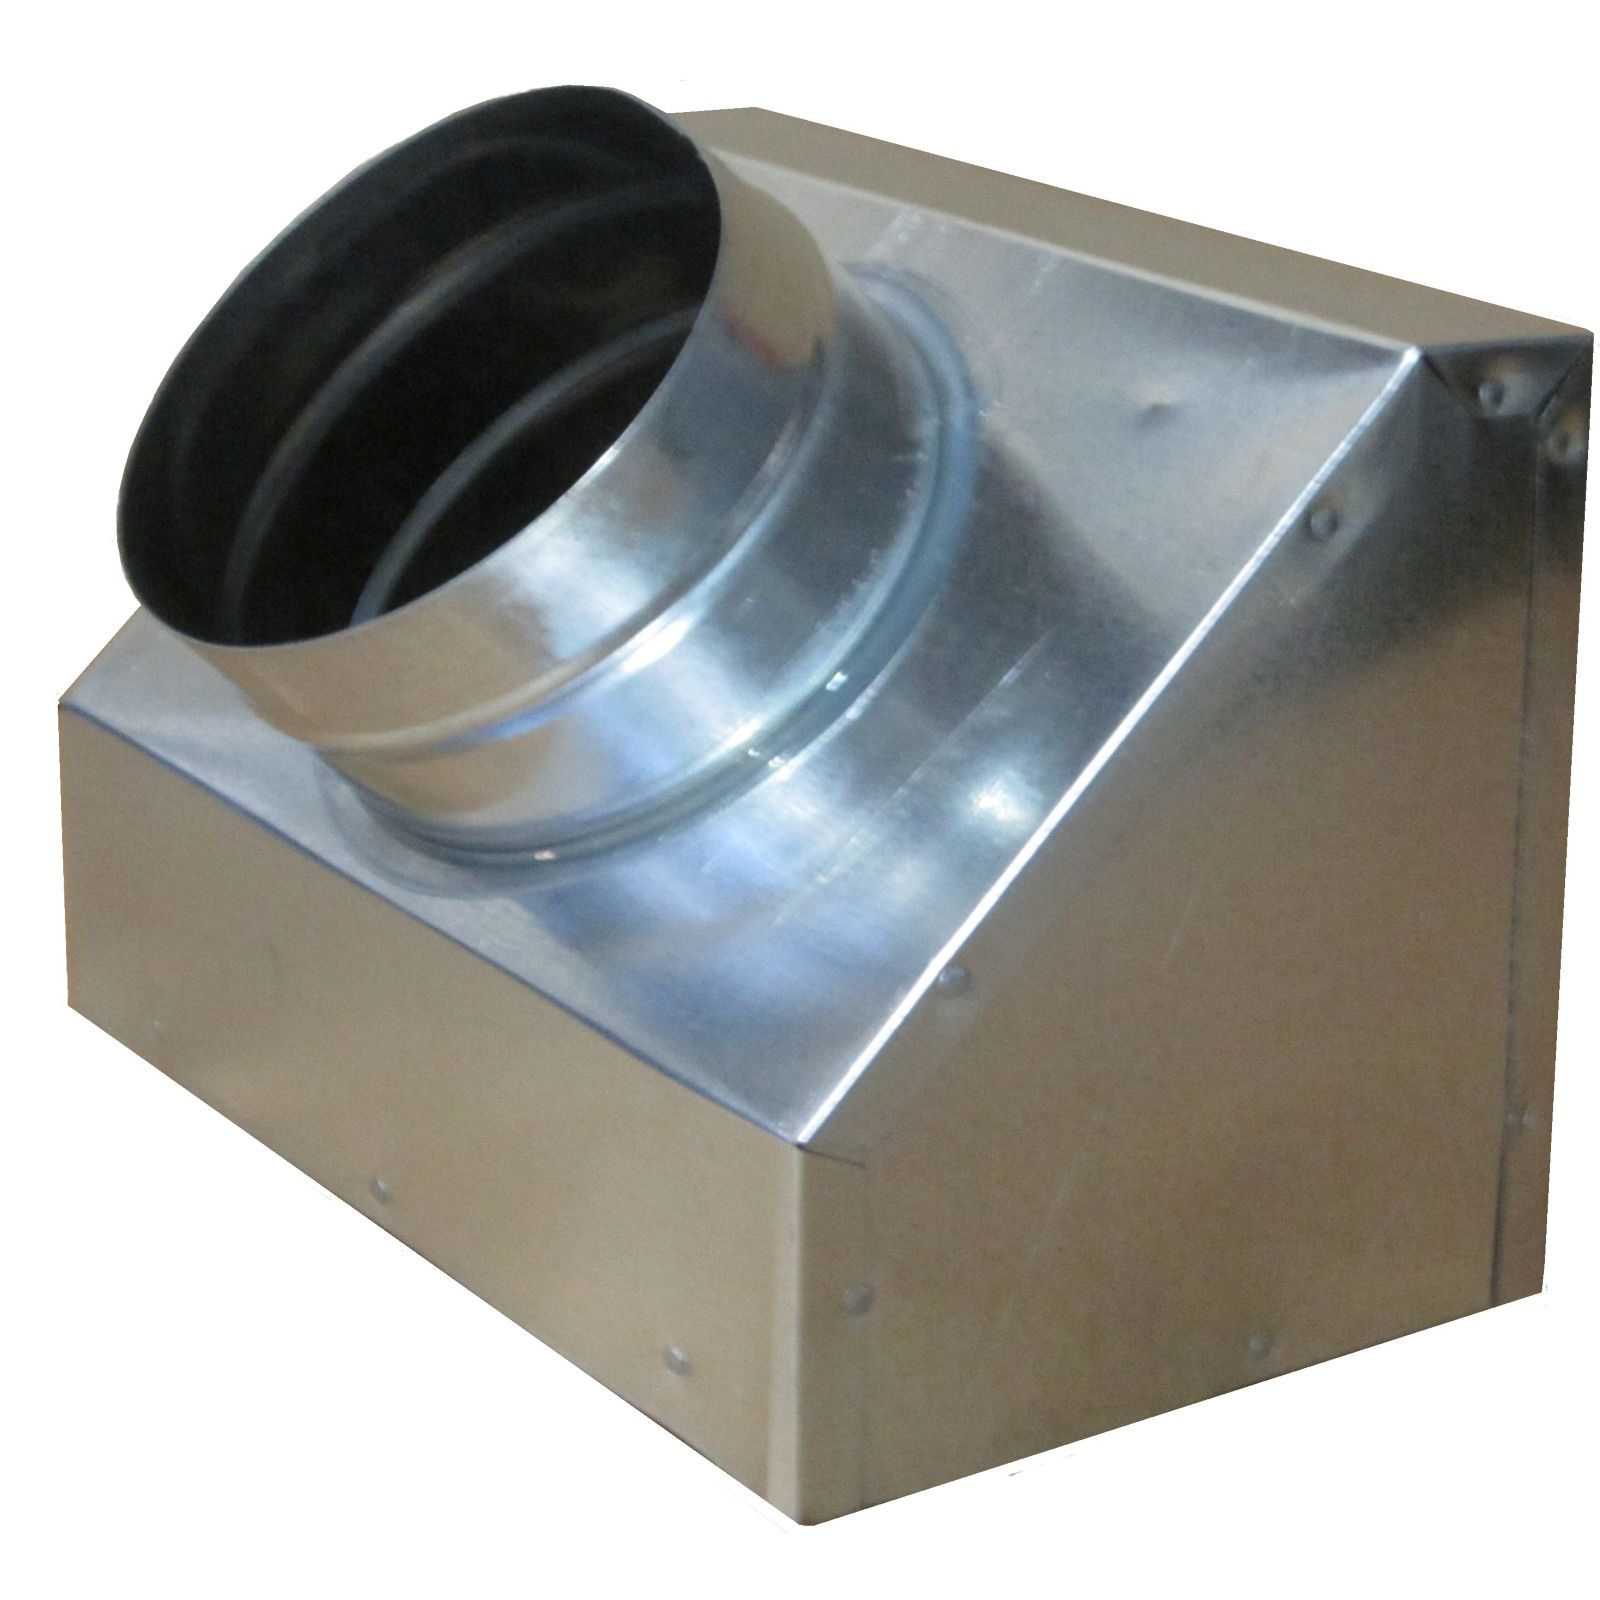 "Snap-Rite 10X06X063600NFS - Metal Top Insulated Slant Register Box No Flange, 10"" x 06"" x 06"" - R6"